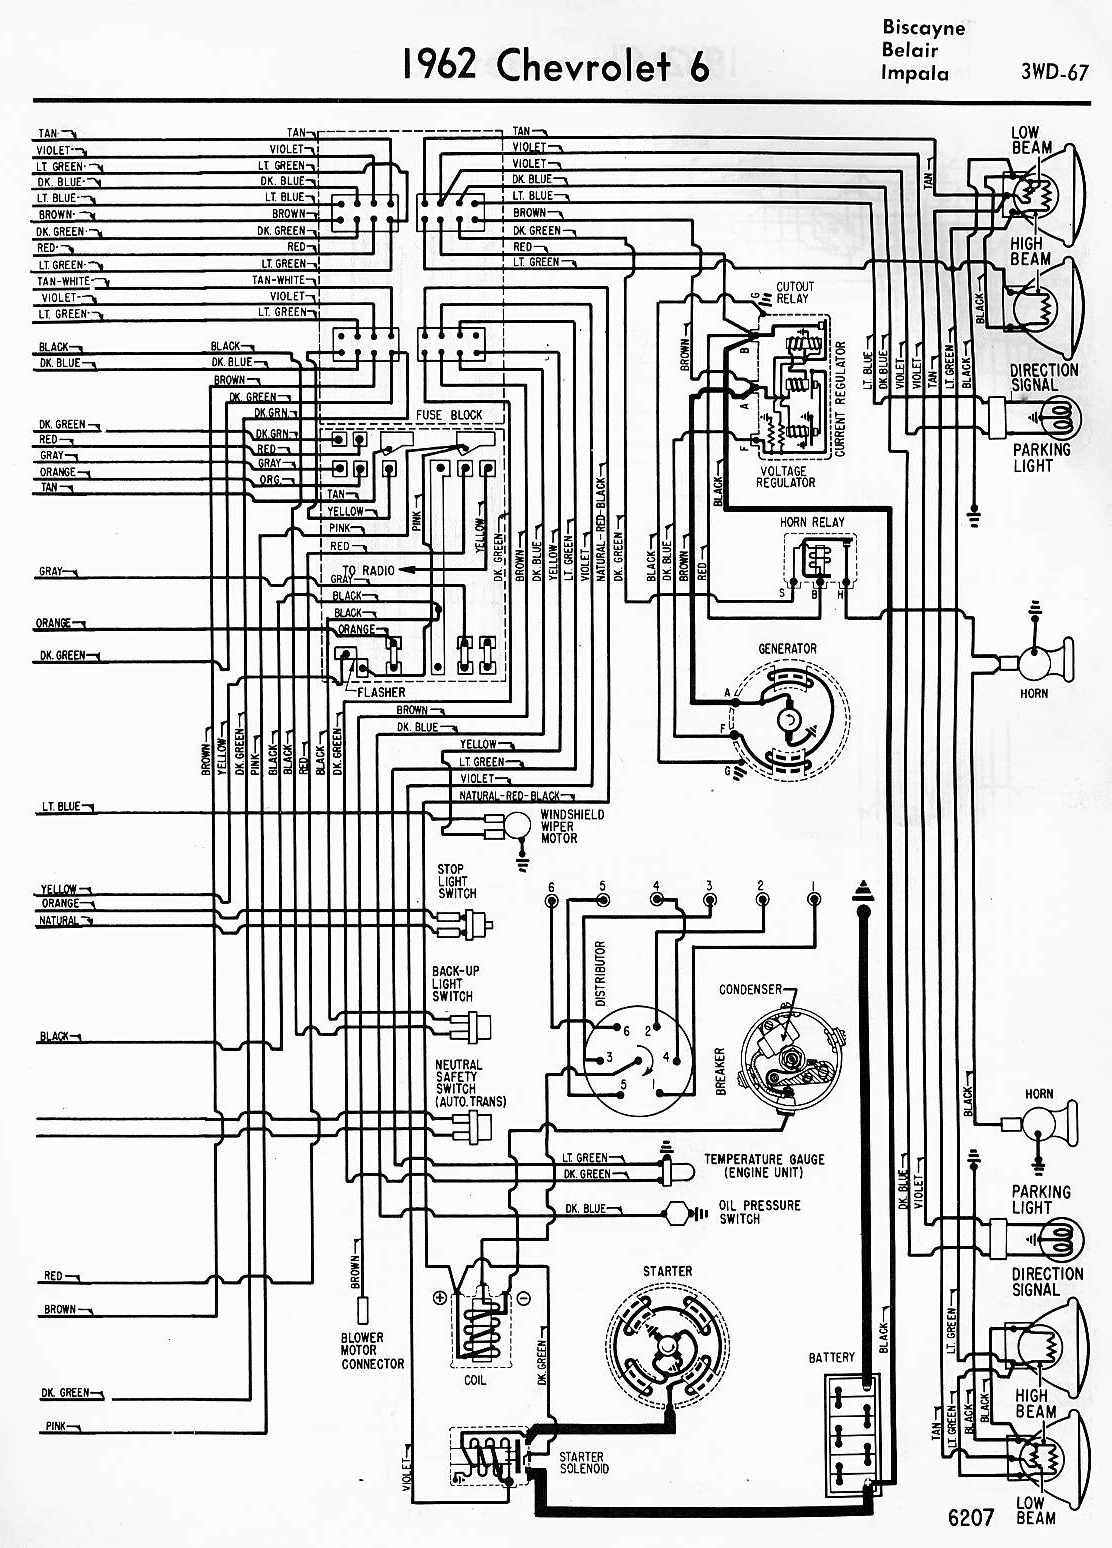 Nice Universal Wiper Motor Wiring Diagram Mold Everything You Need